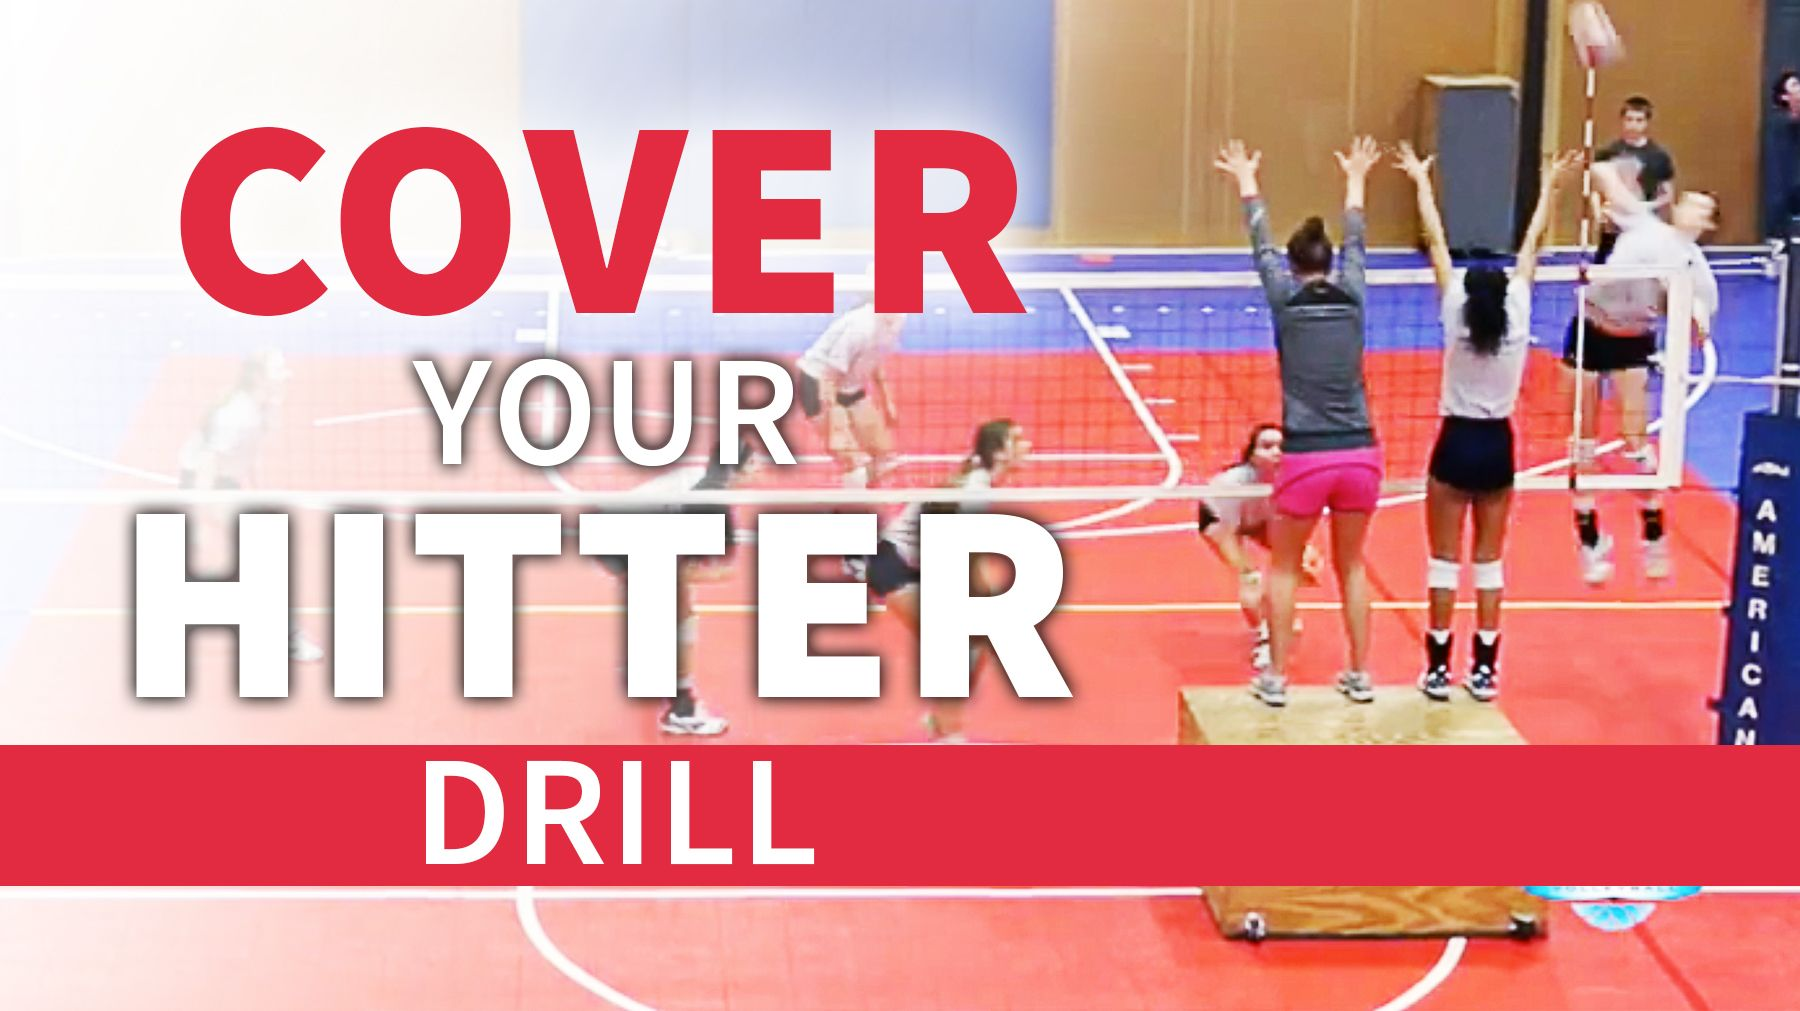 Cover Your Hitter Drill The Art Of Coaching Volleyball Coaching Volleyball Volleyball Practice Volleyball Training